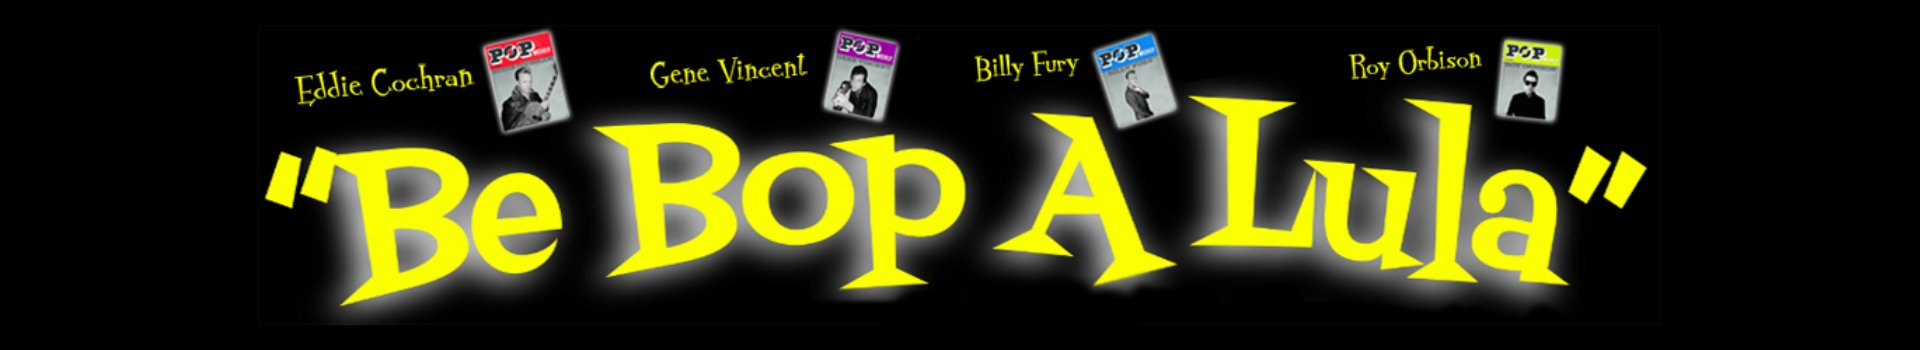 Be Bop A Lula Ambassadors Theatre tickets London